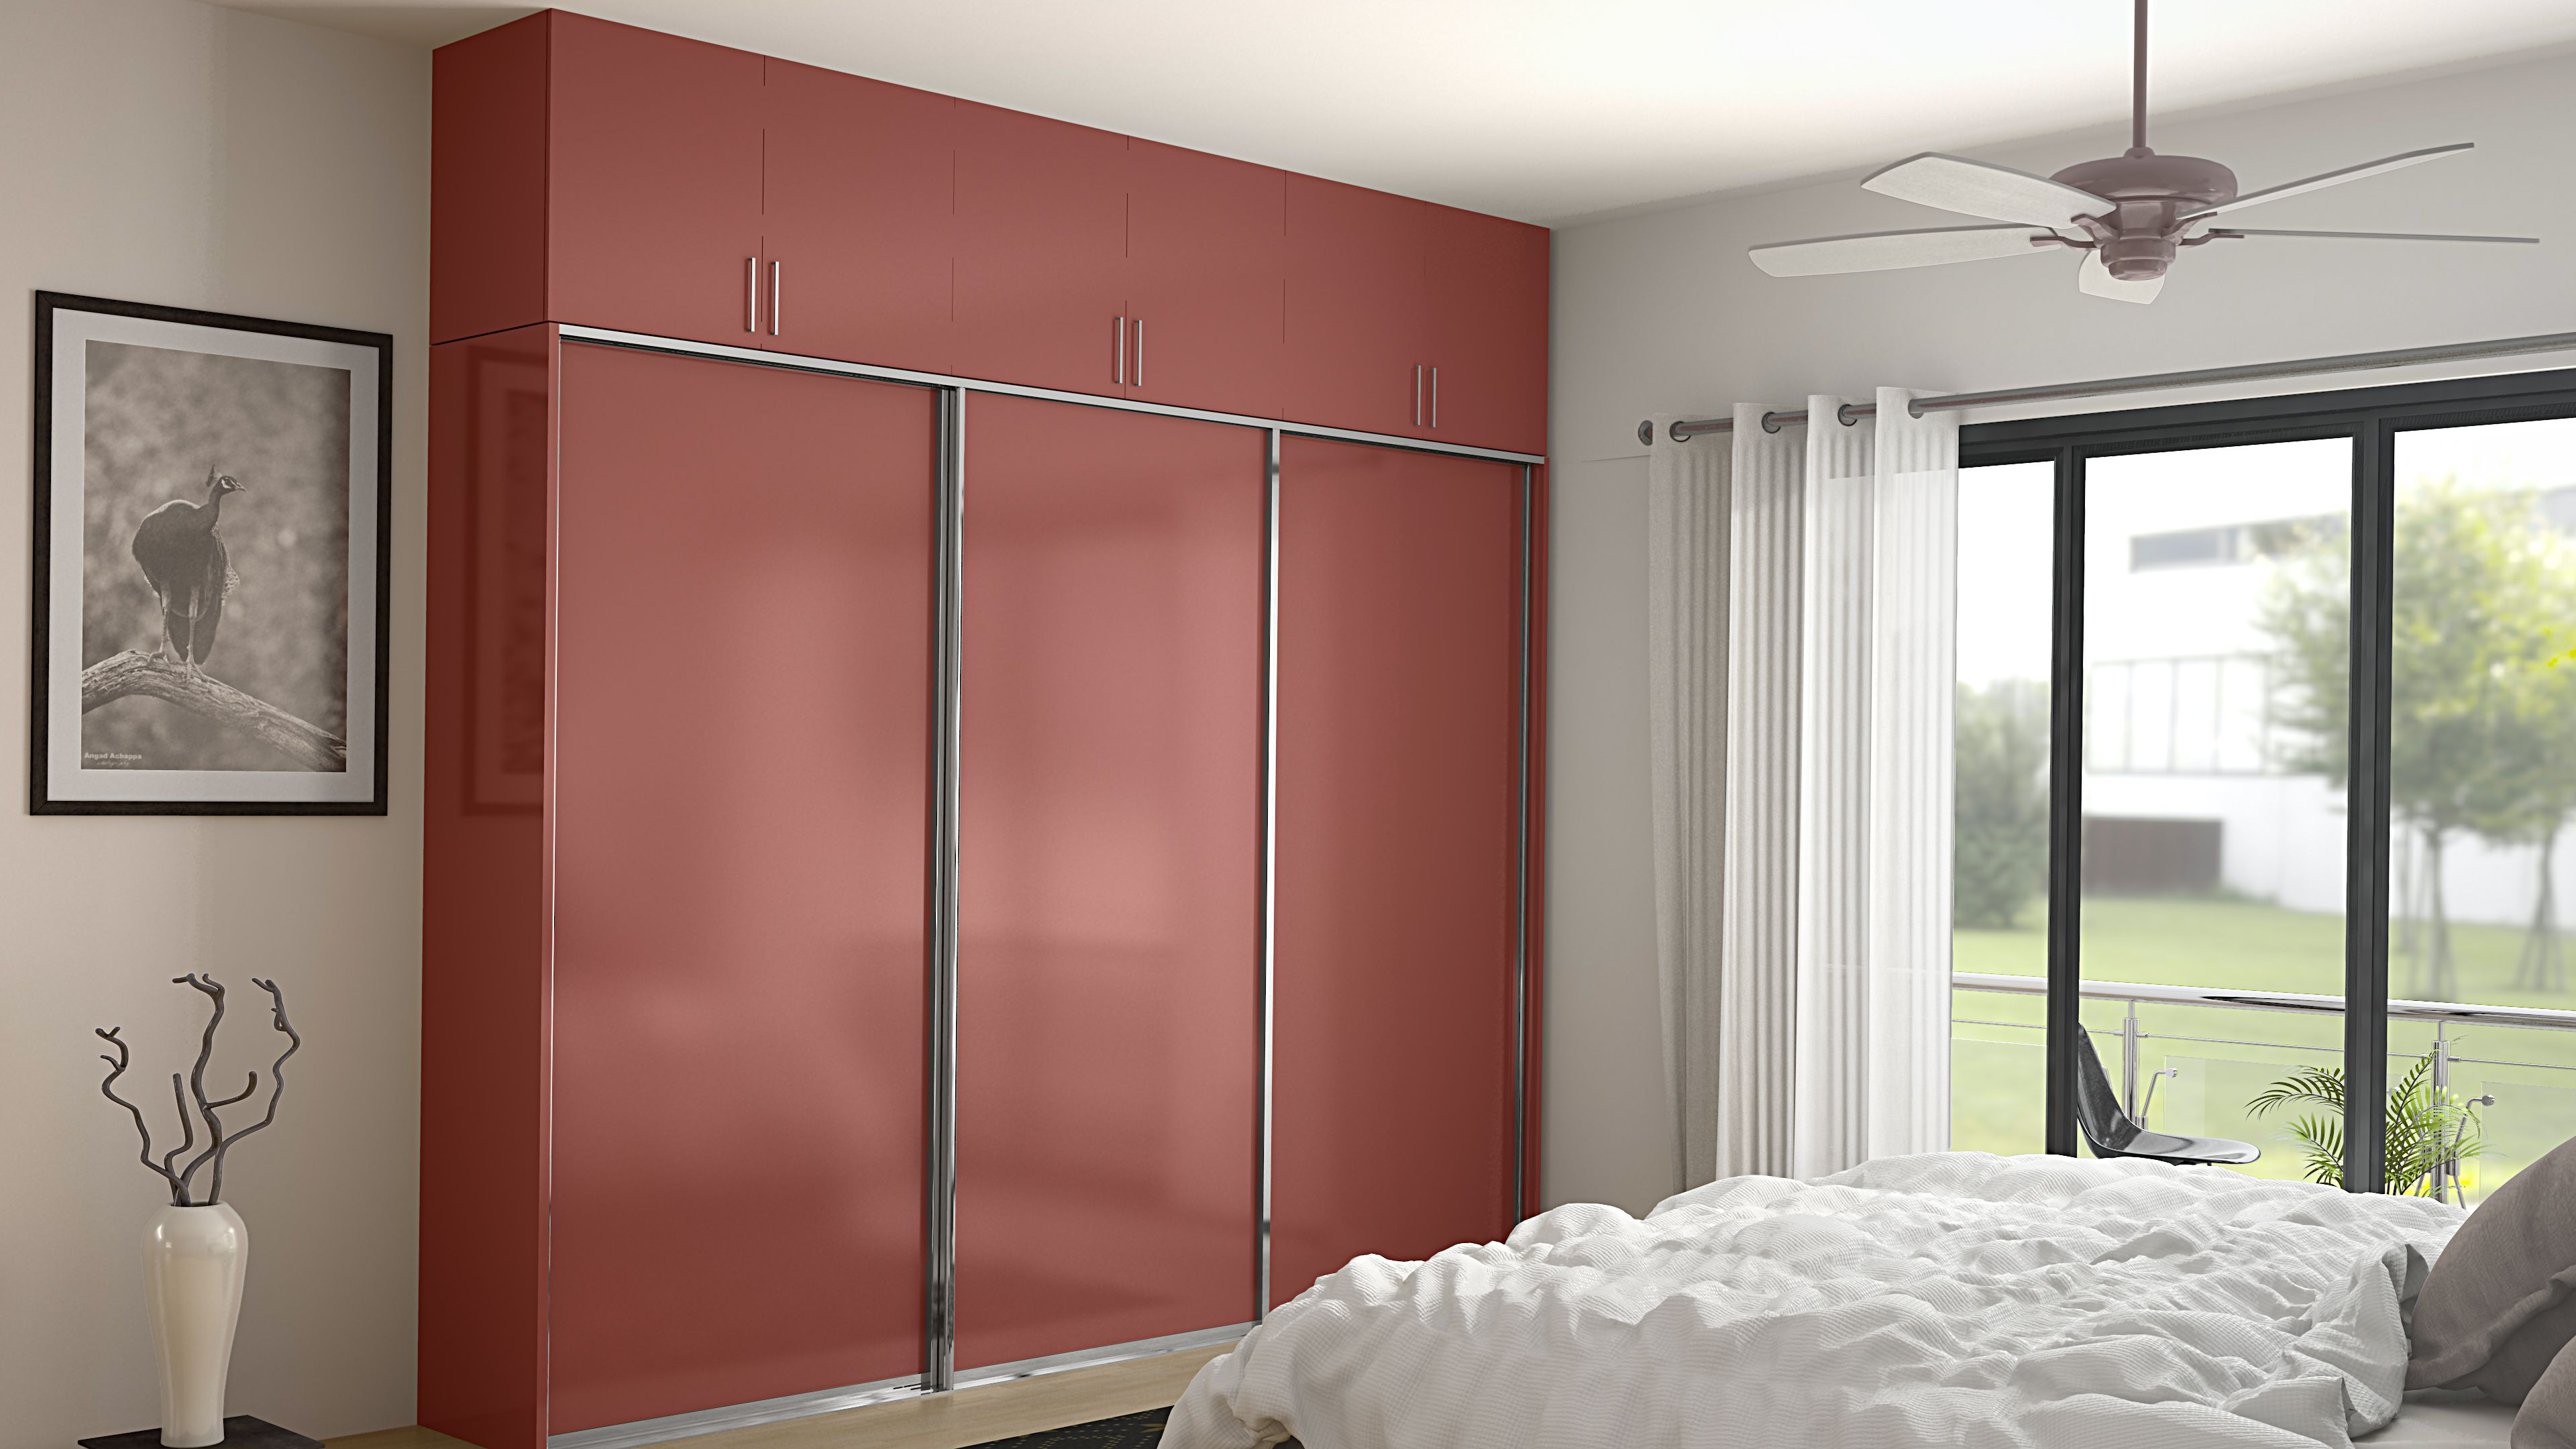 A Wardrobe Is Not Just A Closet To Keep Your Clothes And Essentials, But It  Can Change The Very Look Of Your Bedroom. Wardrobe Designs Should Be Classy  And ...